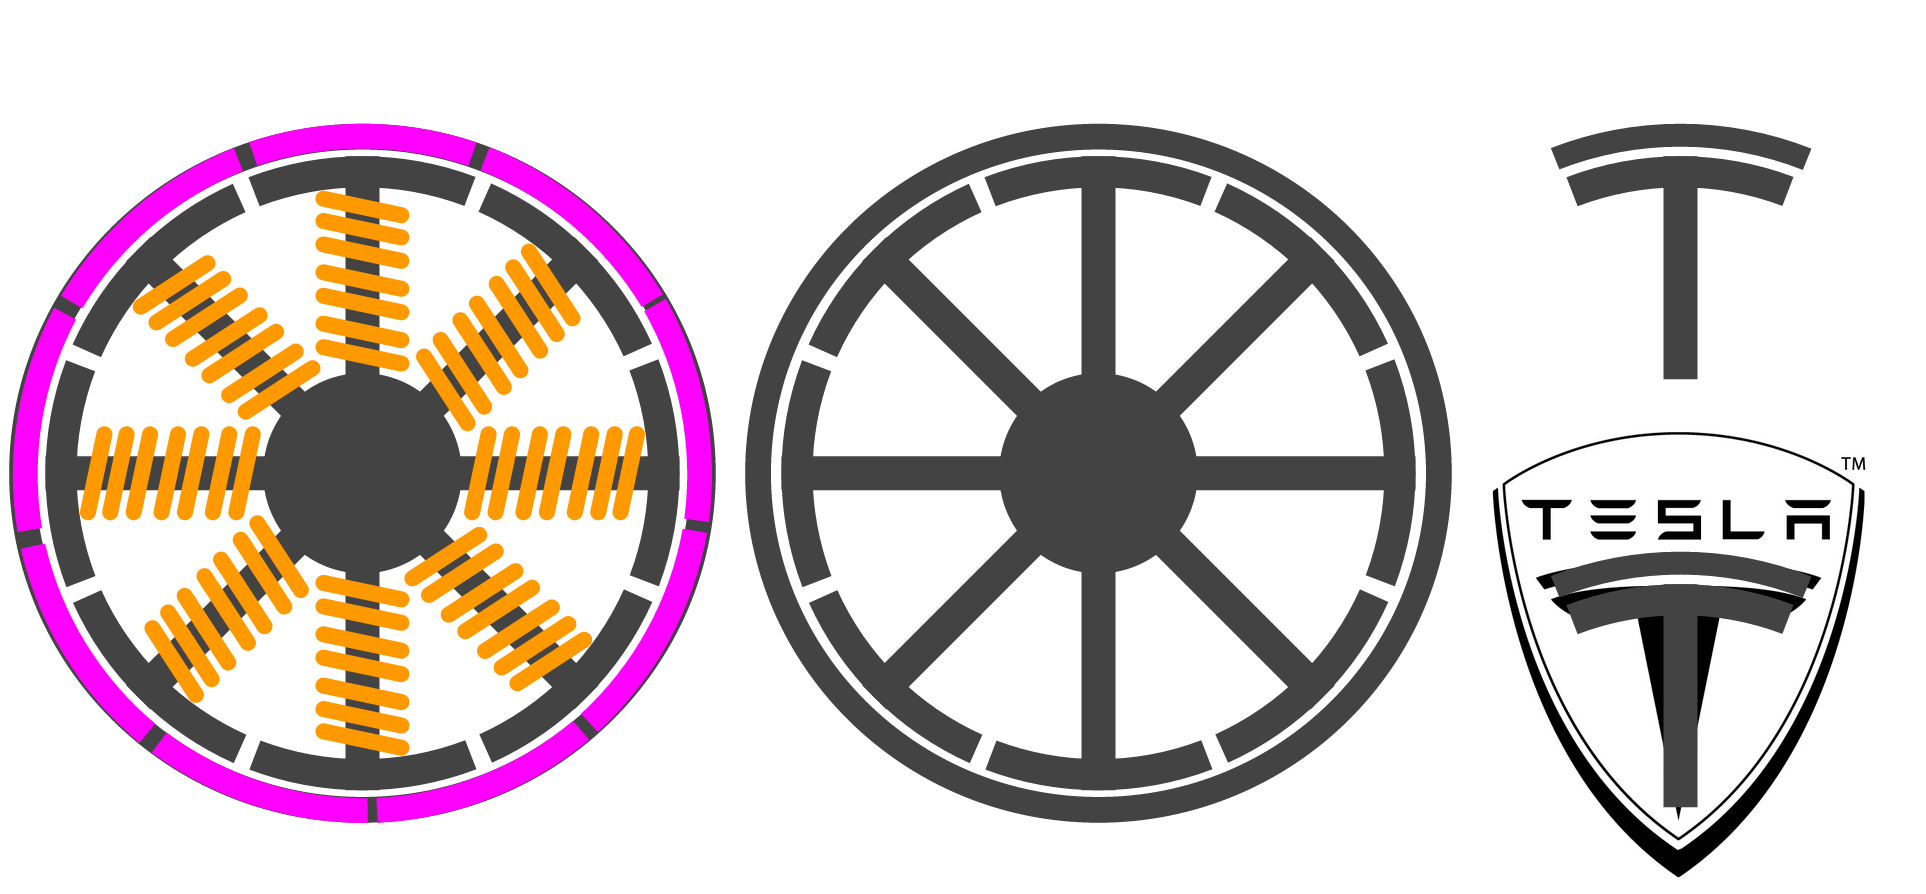 And now we learn that the very same motor is also part of the logo. The more you know…